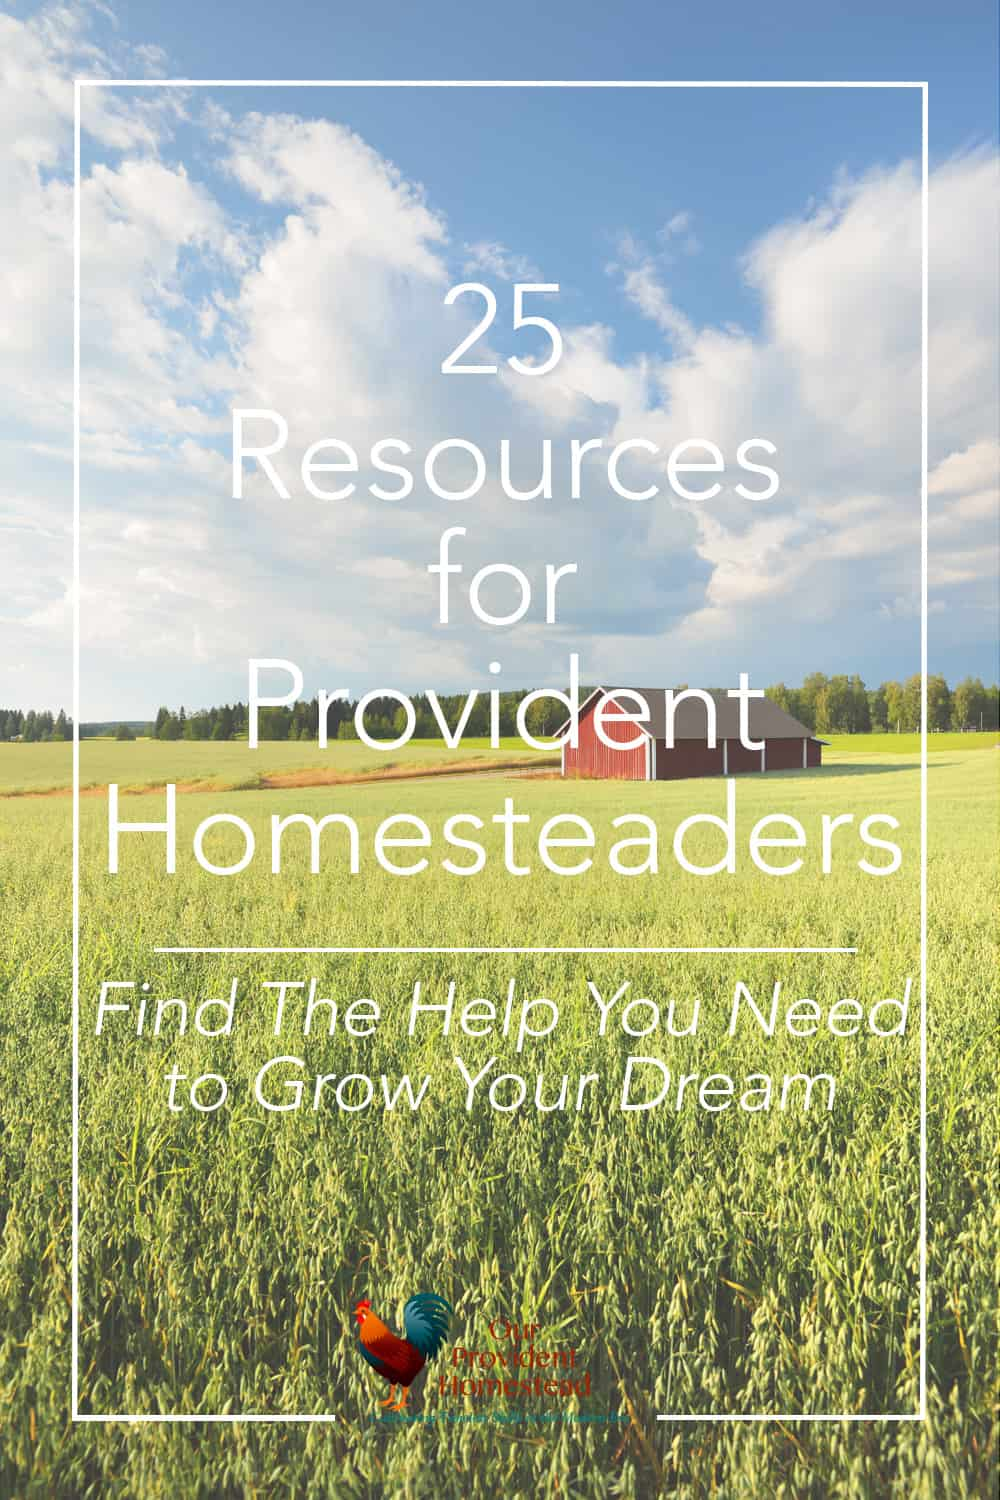 Do you need help for your new homestead? Click here for 21 resources for provident homesteaders to help you find the information you need. #homesteading #homesteadingforbeginners #homestead #homesteadingideas #homesteadinggoals #homesteader